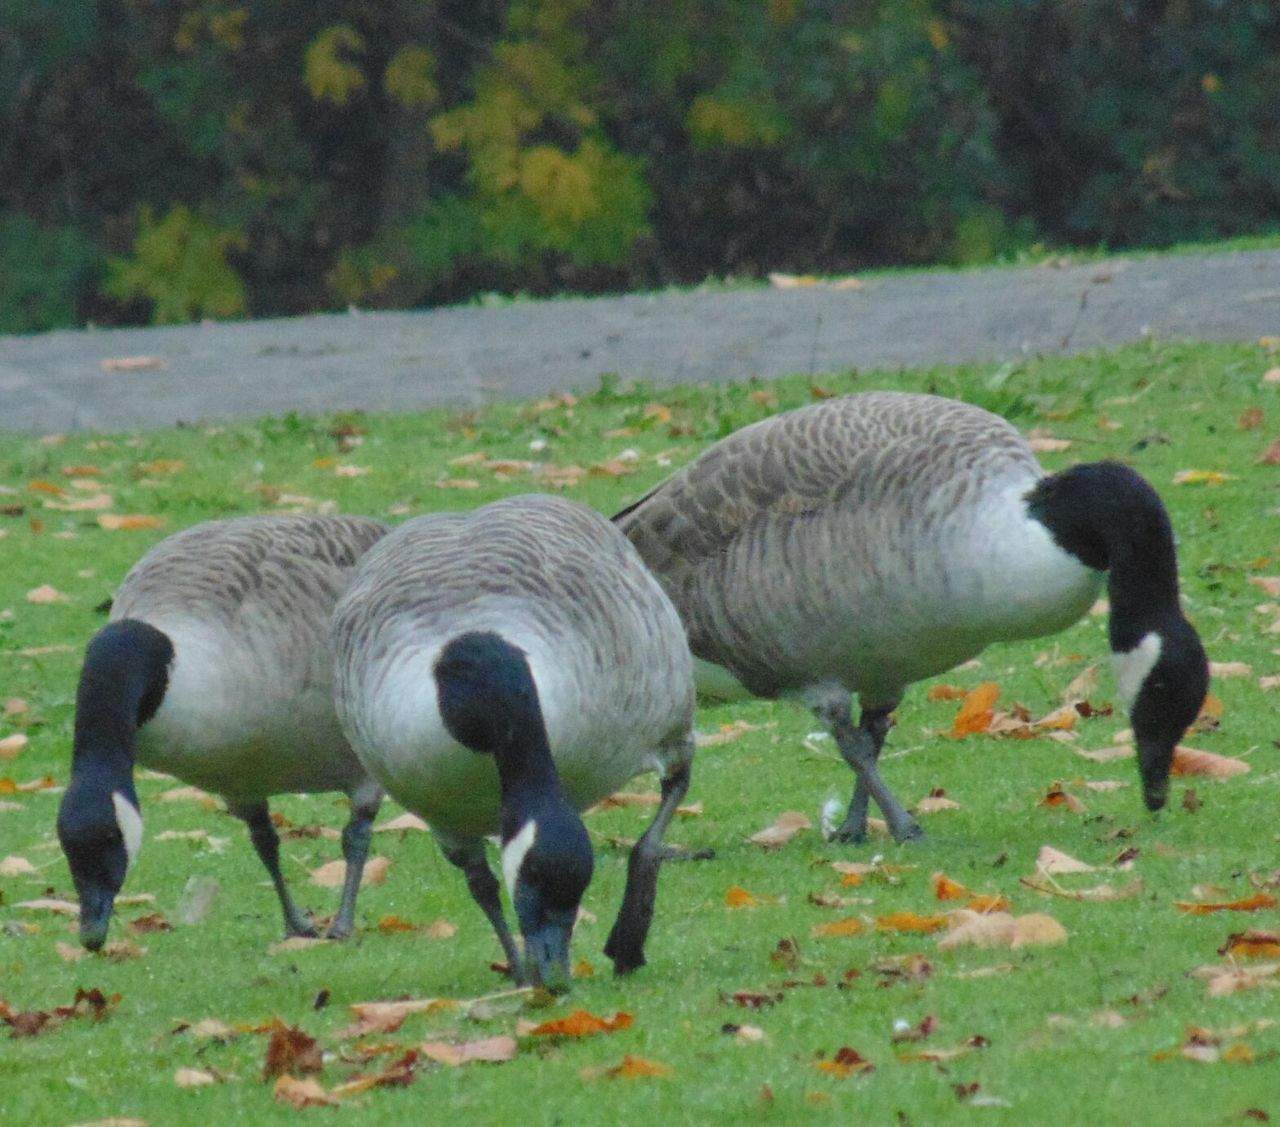 animal themes, bird, animals in the wild, field, nature, animal wildlife, no people, outdoors, day, grass, close-up